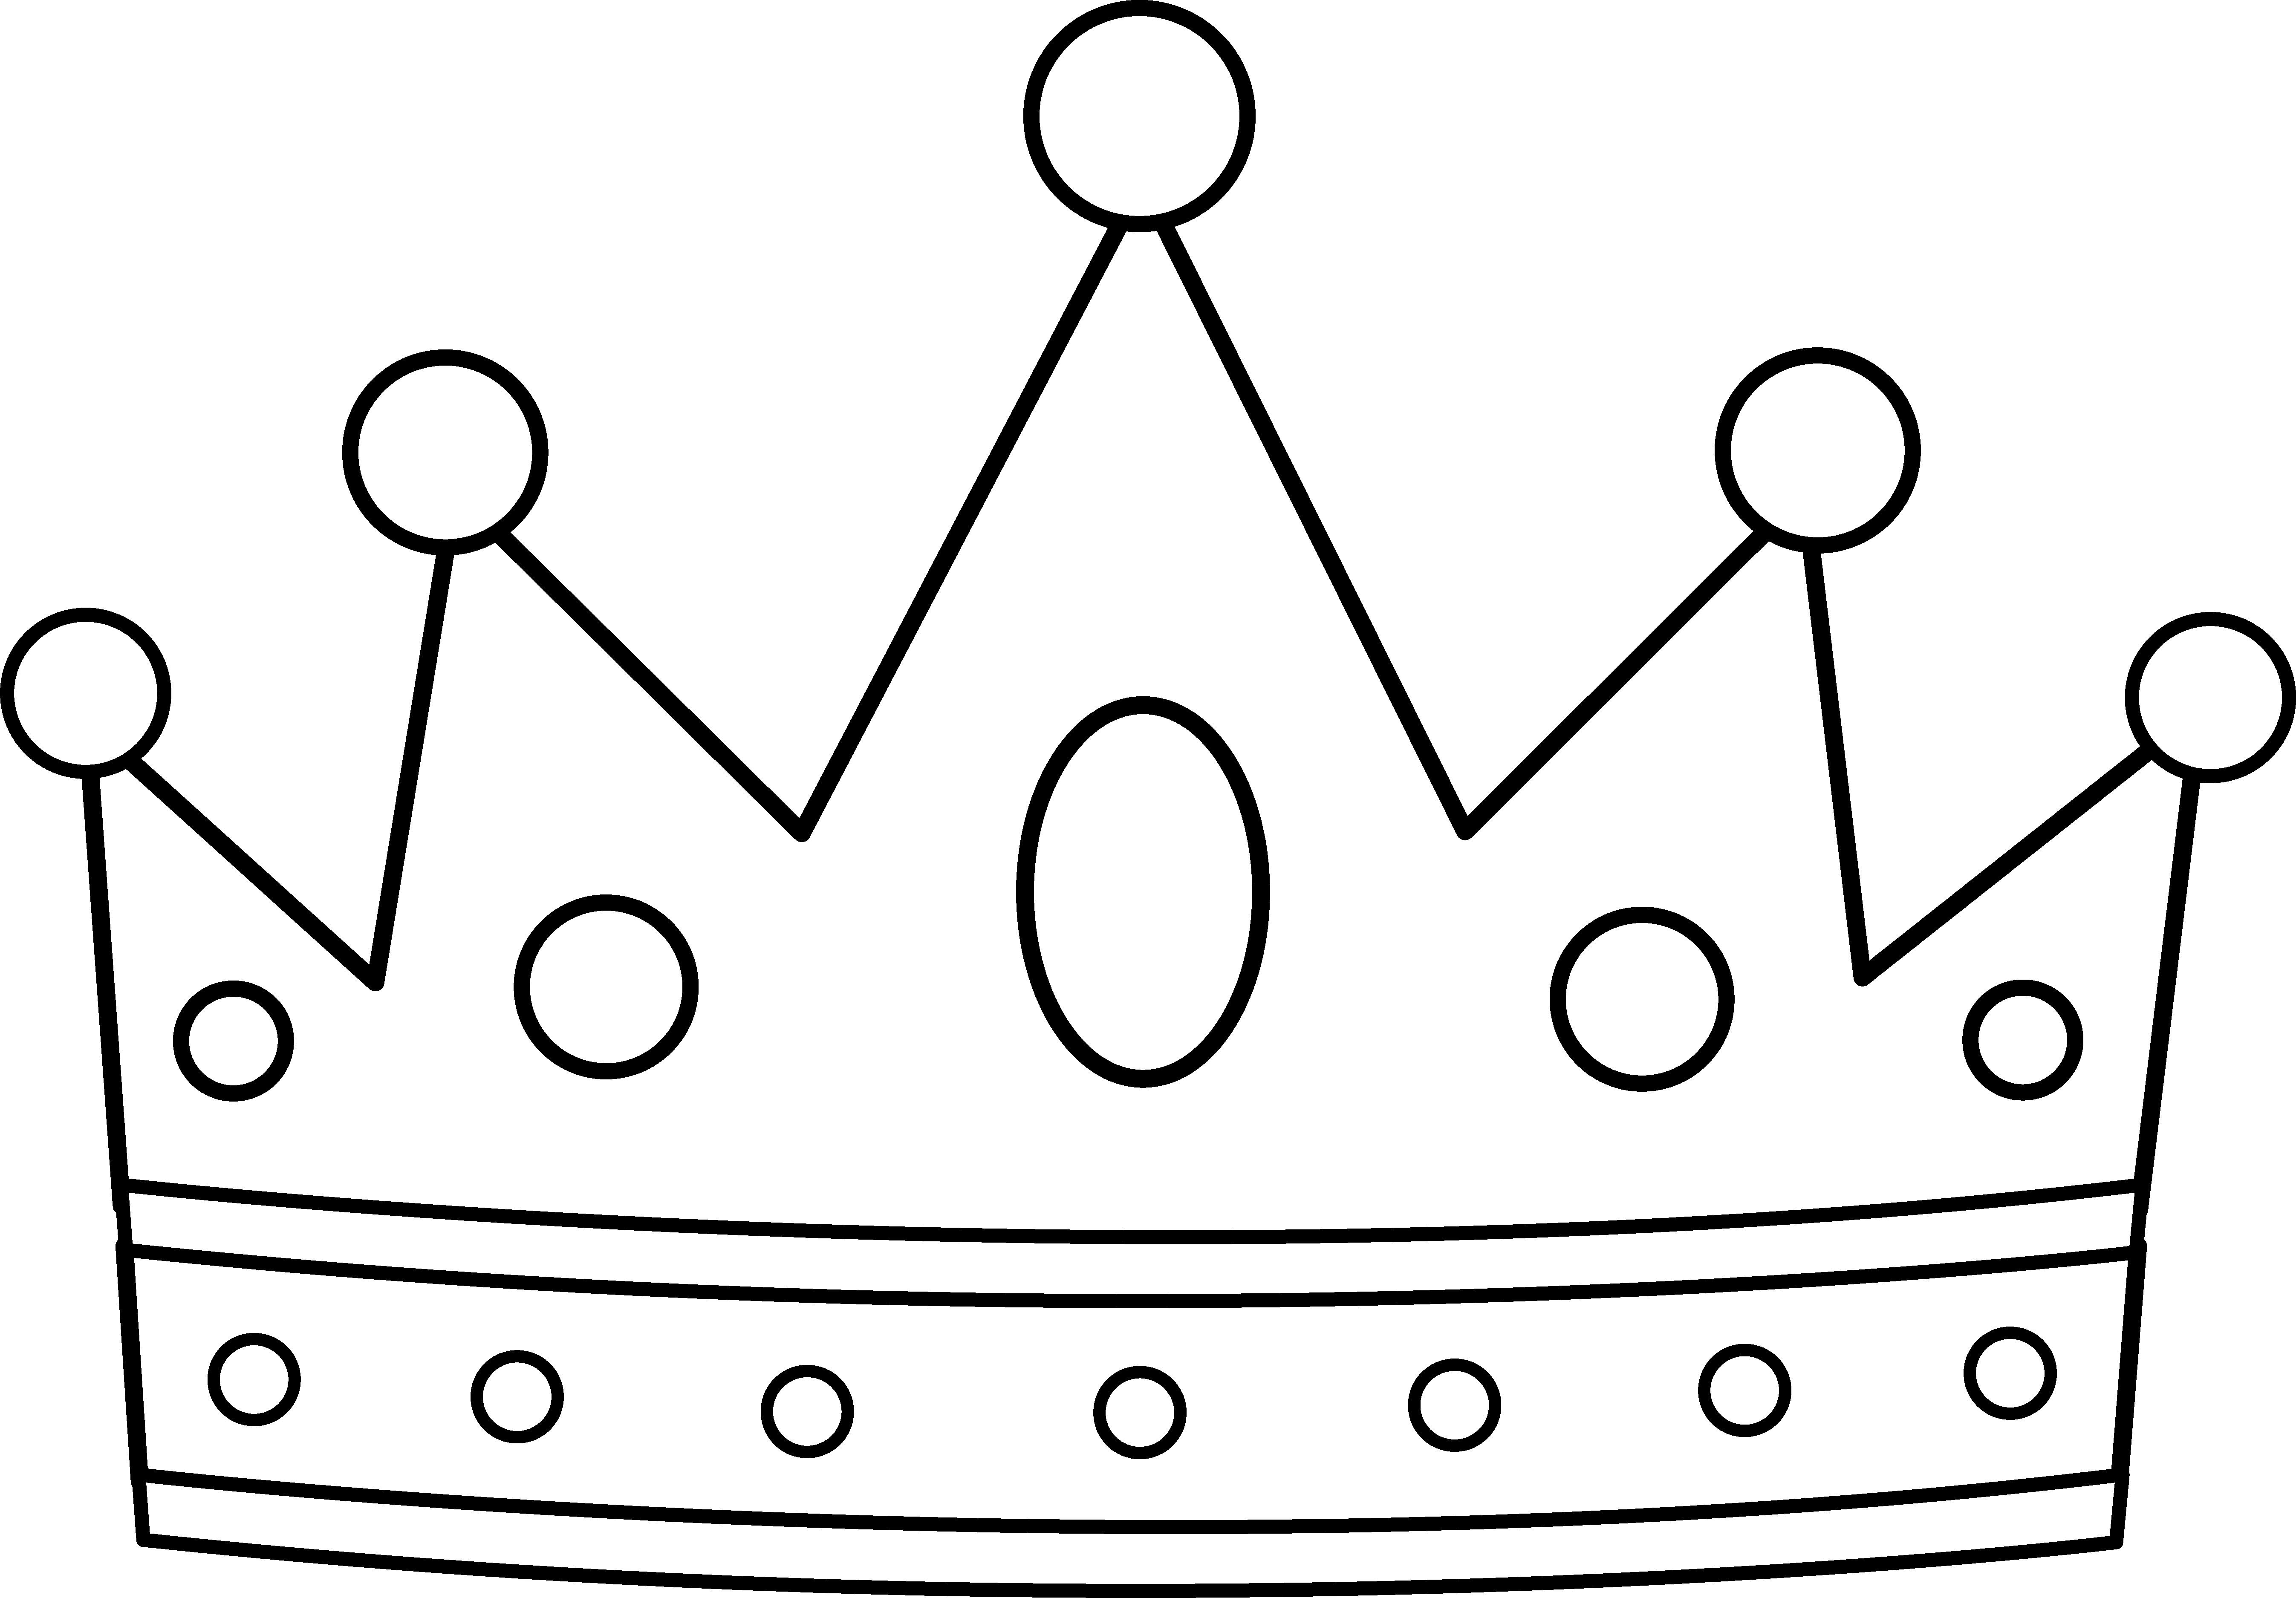 Crown Template Crown Template Crown Printable Crown Outline